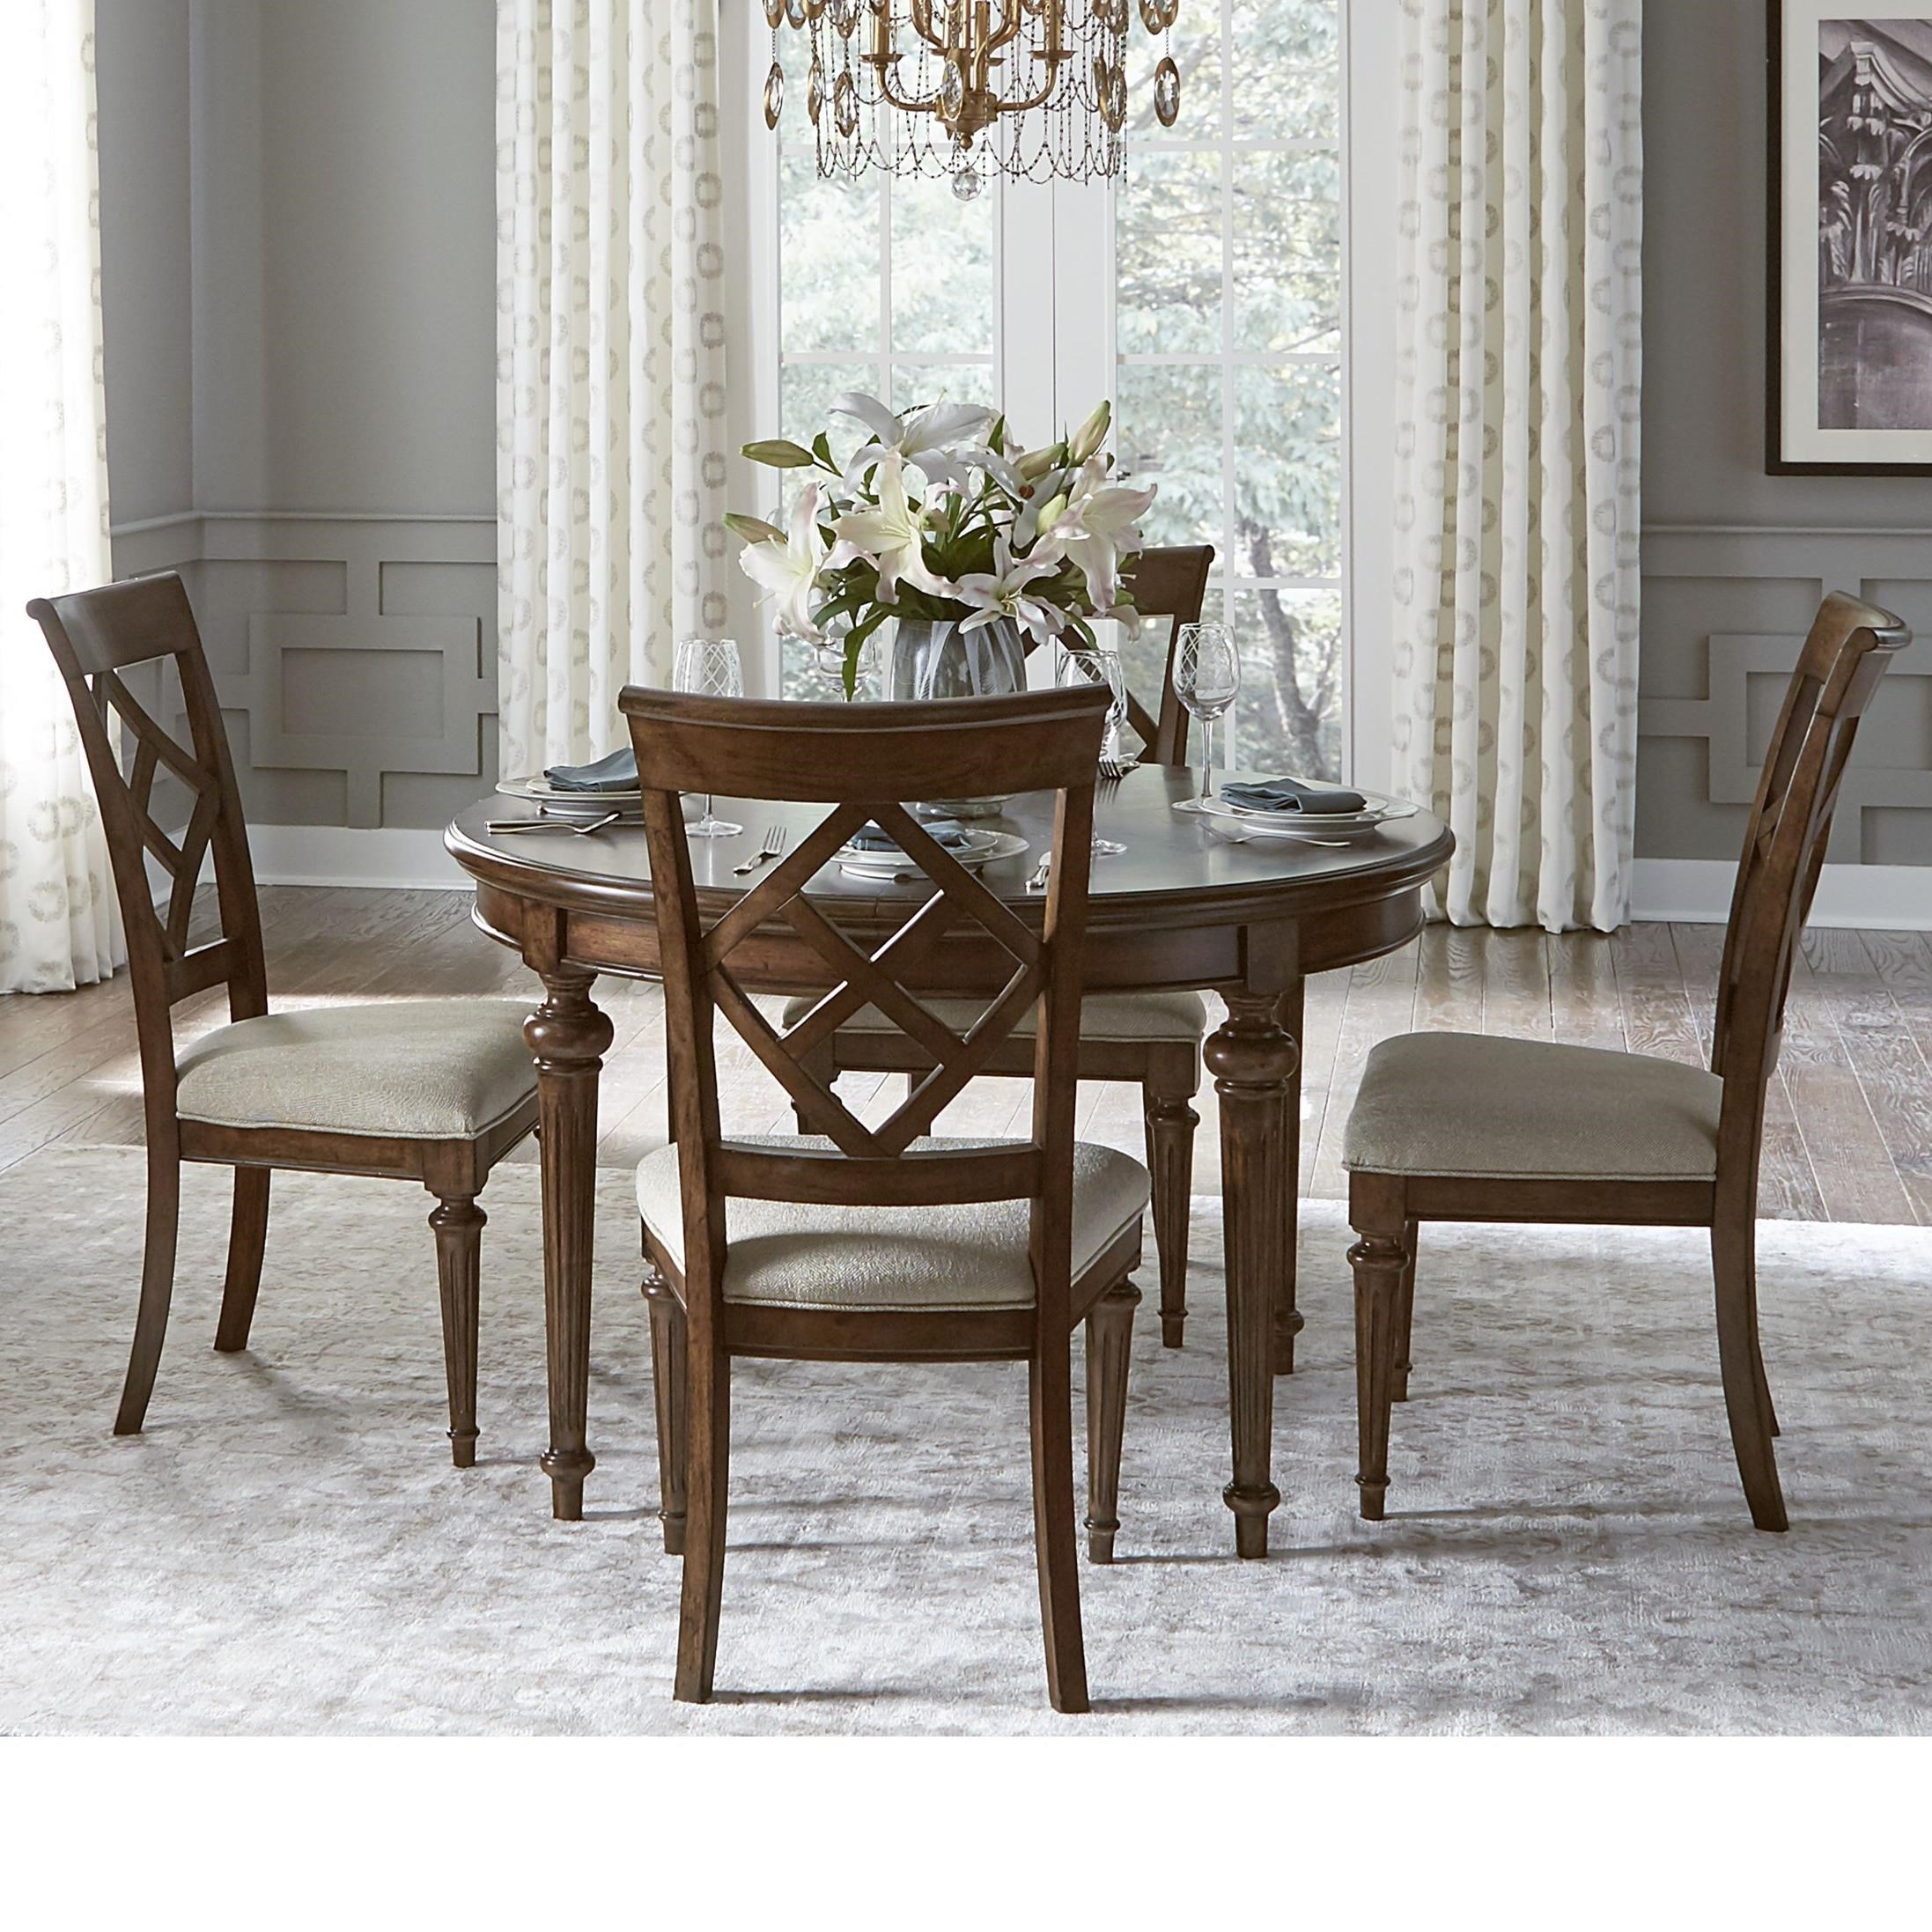 Legacy classic latham 5 piece dining set with round table for John v schultz dining room table